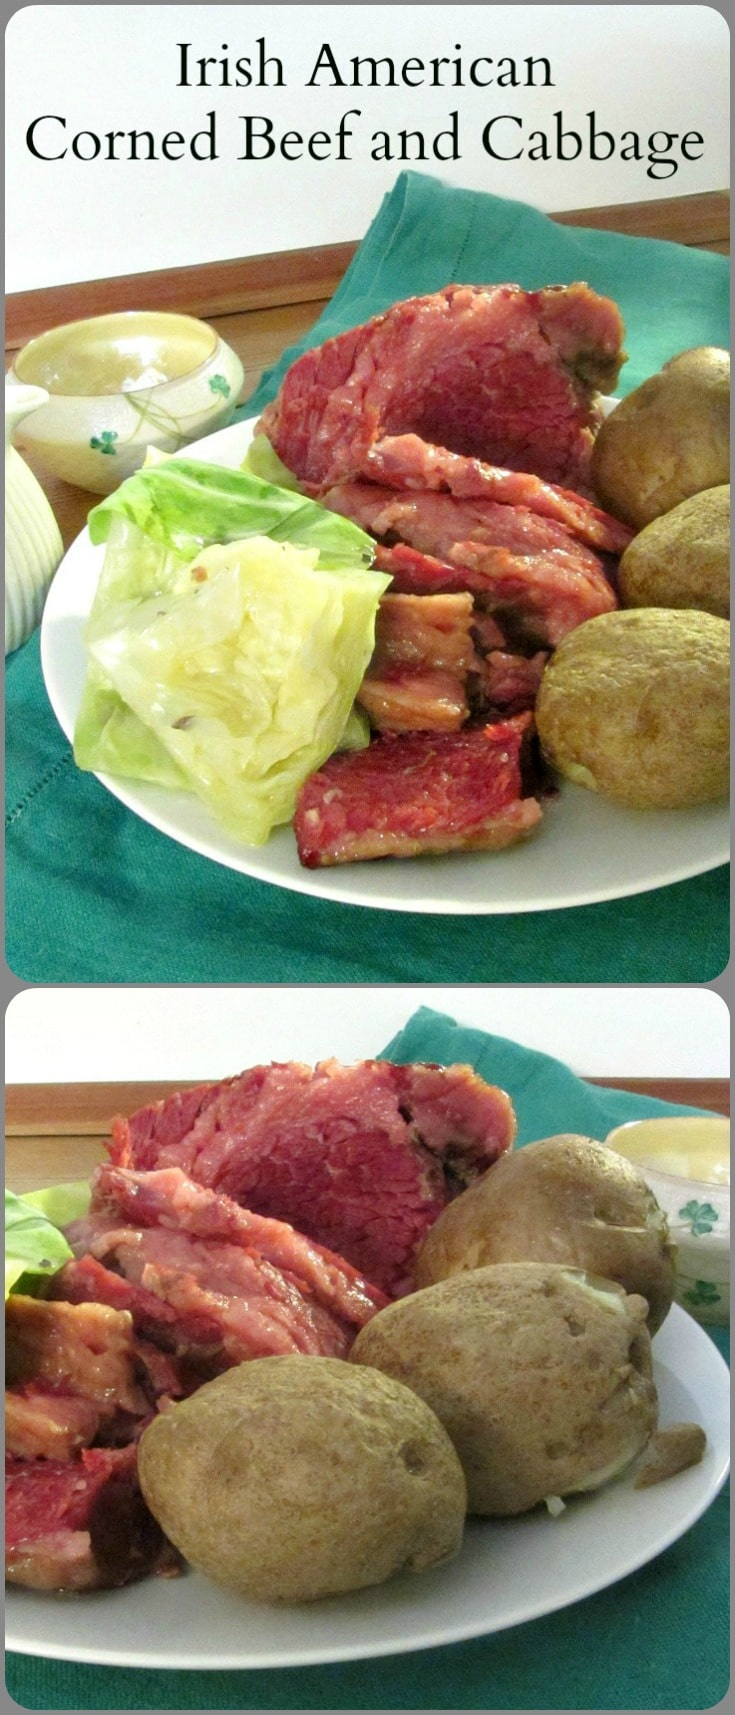 Irish American Corned Beef and Cabbage - a classically American dish, made by immigrants combining familiar technique with available food!